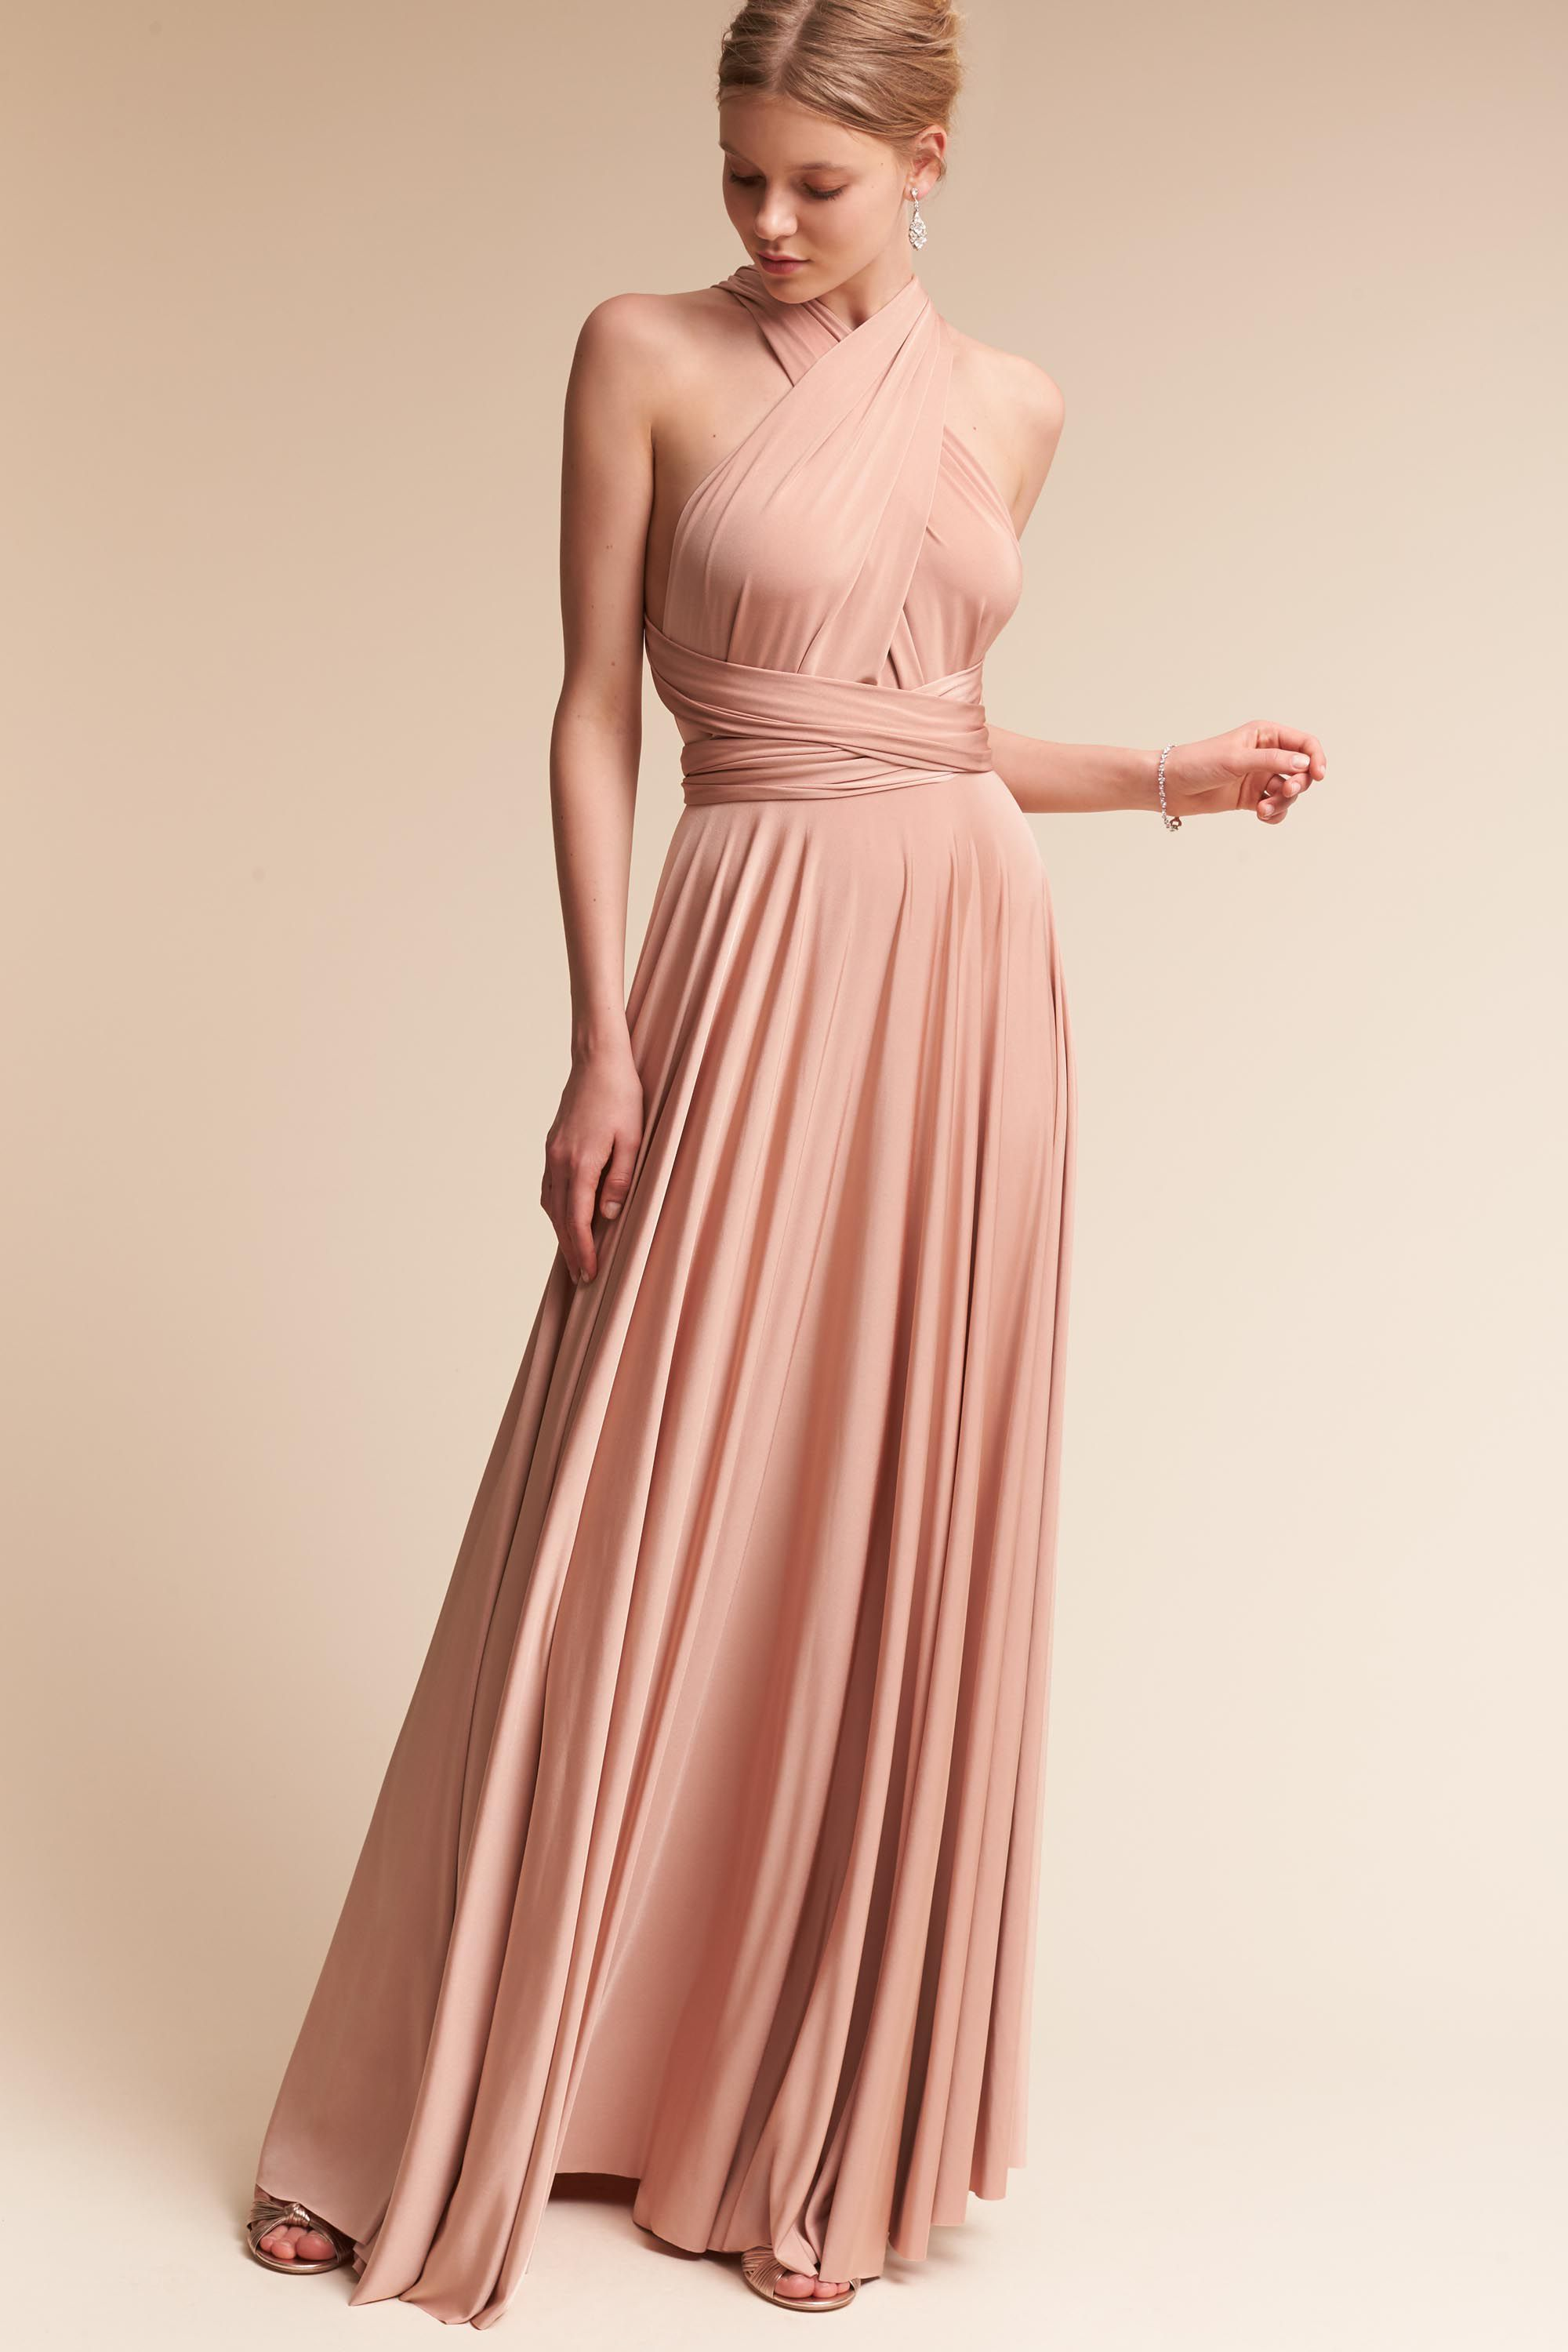 Twobirds Ginger Convertible Maxi Dress In 2020 Convertible Maxi Dress Convertible Maxi Pink Bridesmaid Dresses